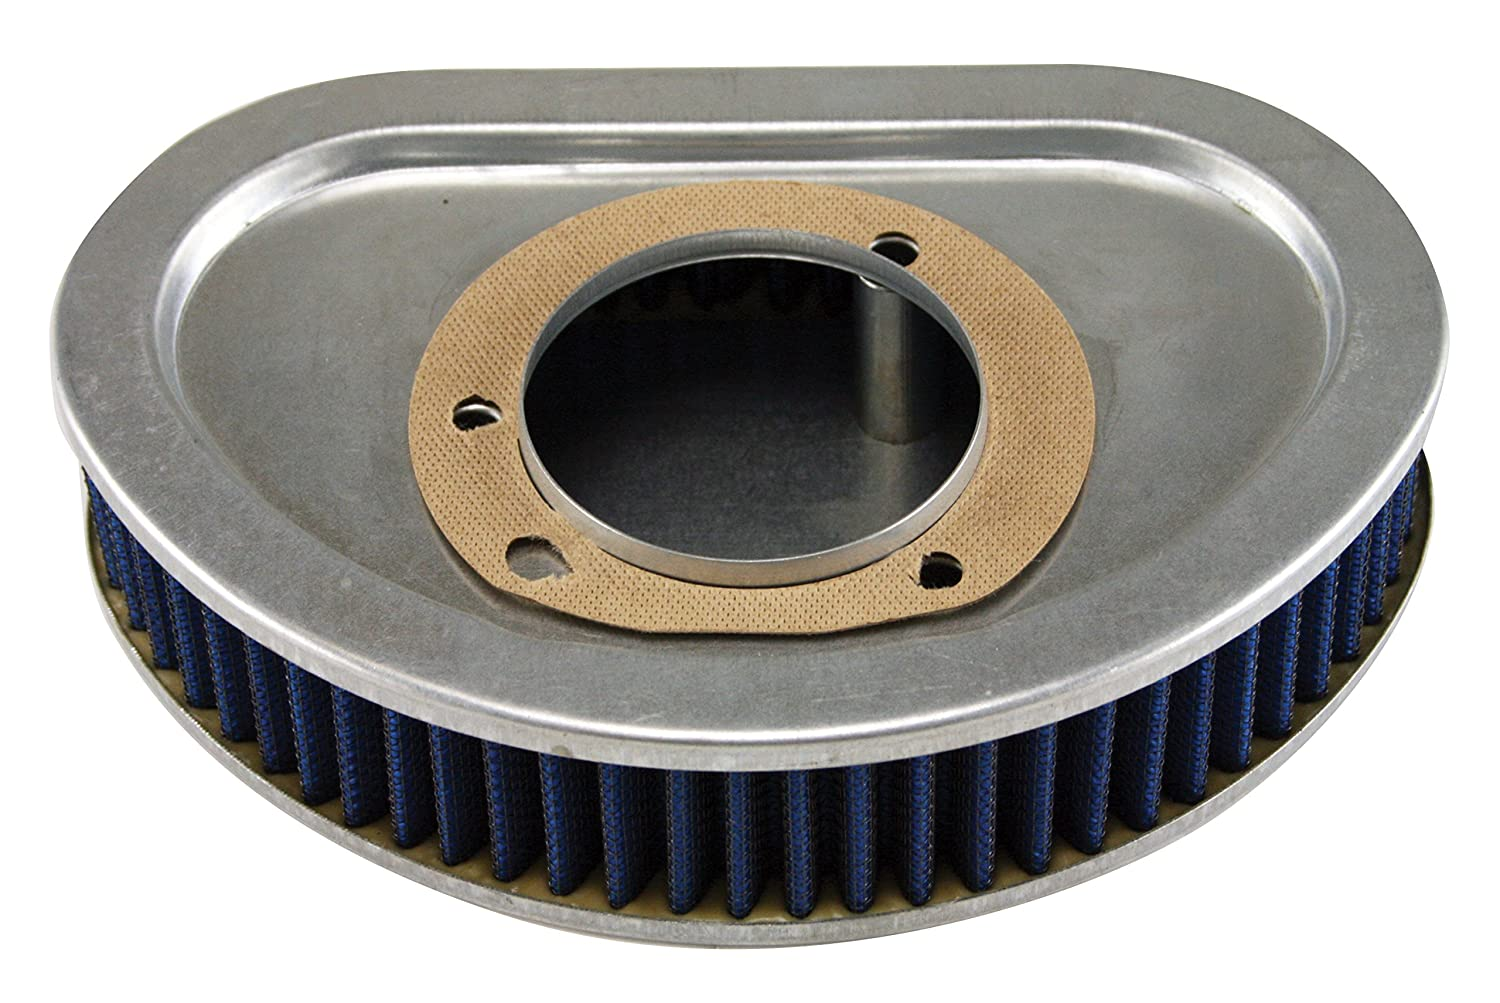 Ultima High-Flo Air Filter for Dyna 2008-Later, 100% Washable & Reusable, OEM# 29191-08